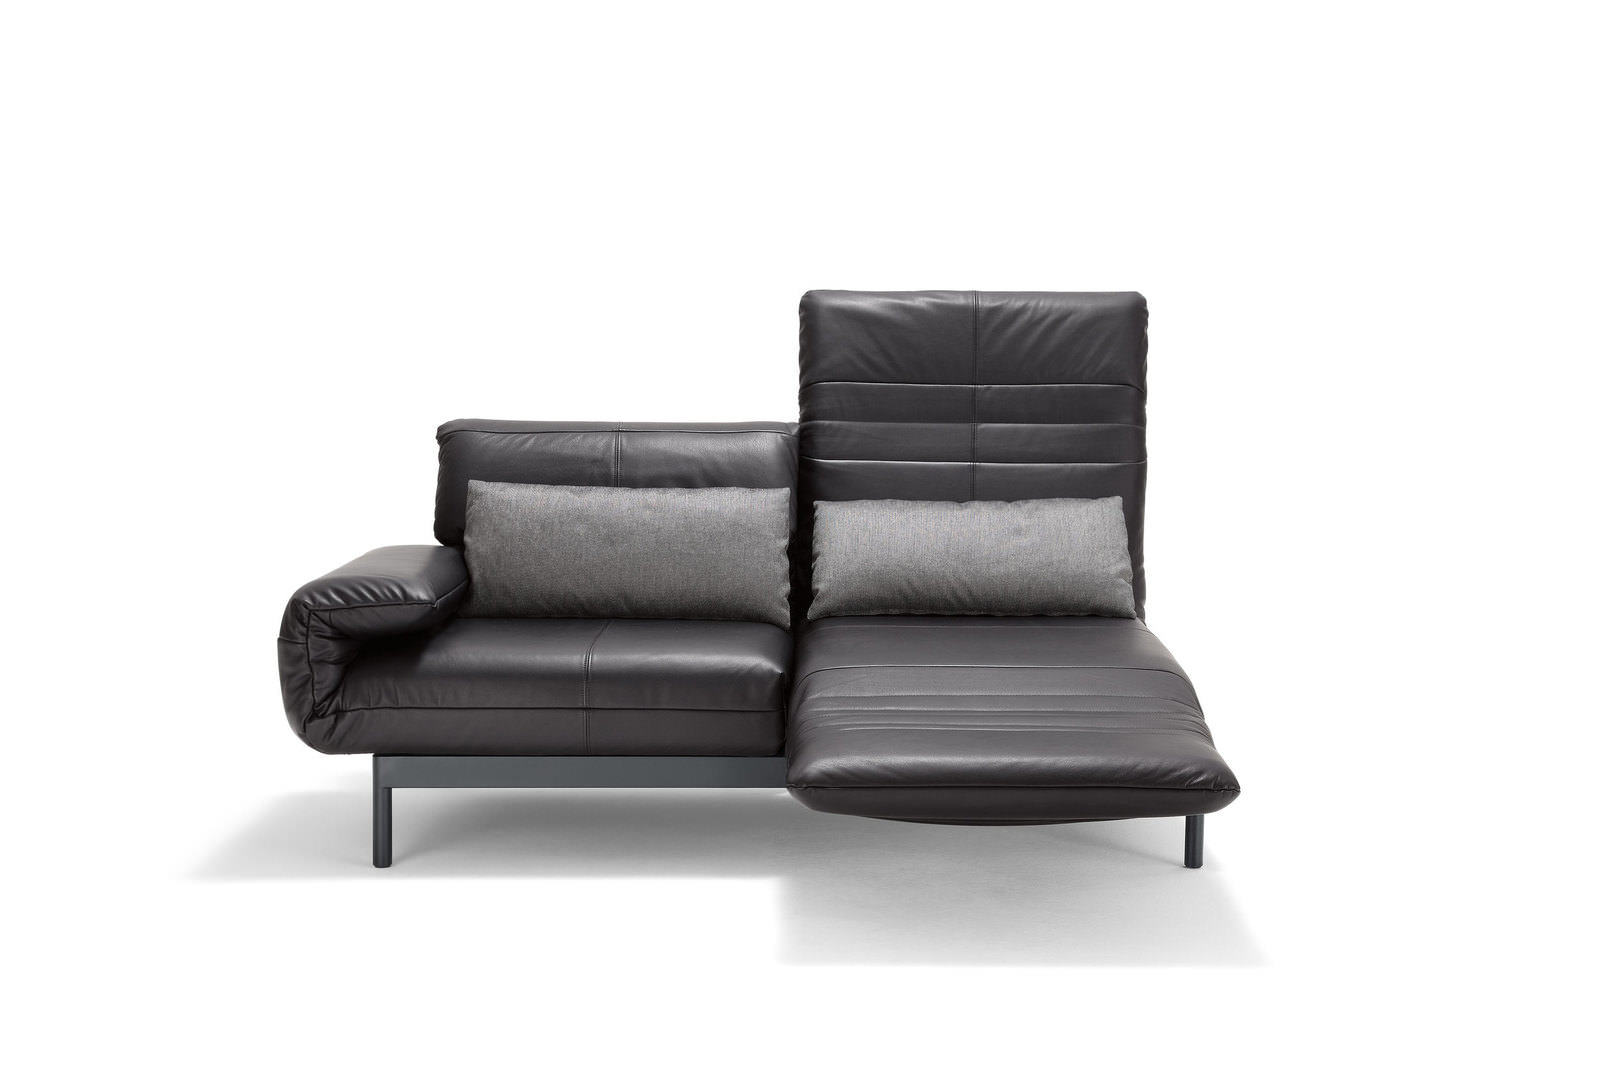 rolf benz sofabank online entdecken schaffrath ihr m belhaus. Black Bedroom Furniture Sets. Home Design Ideas